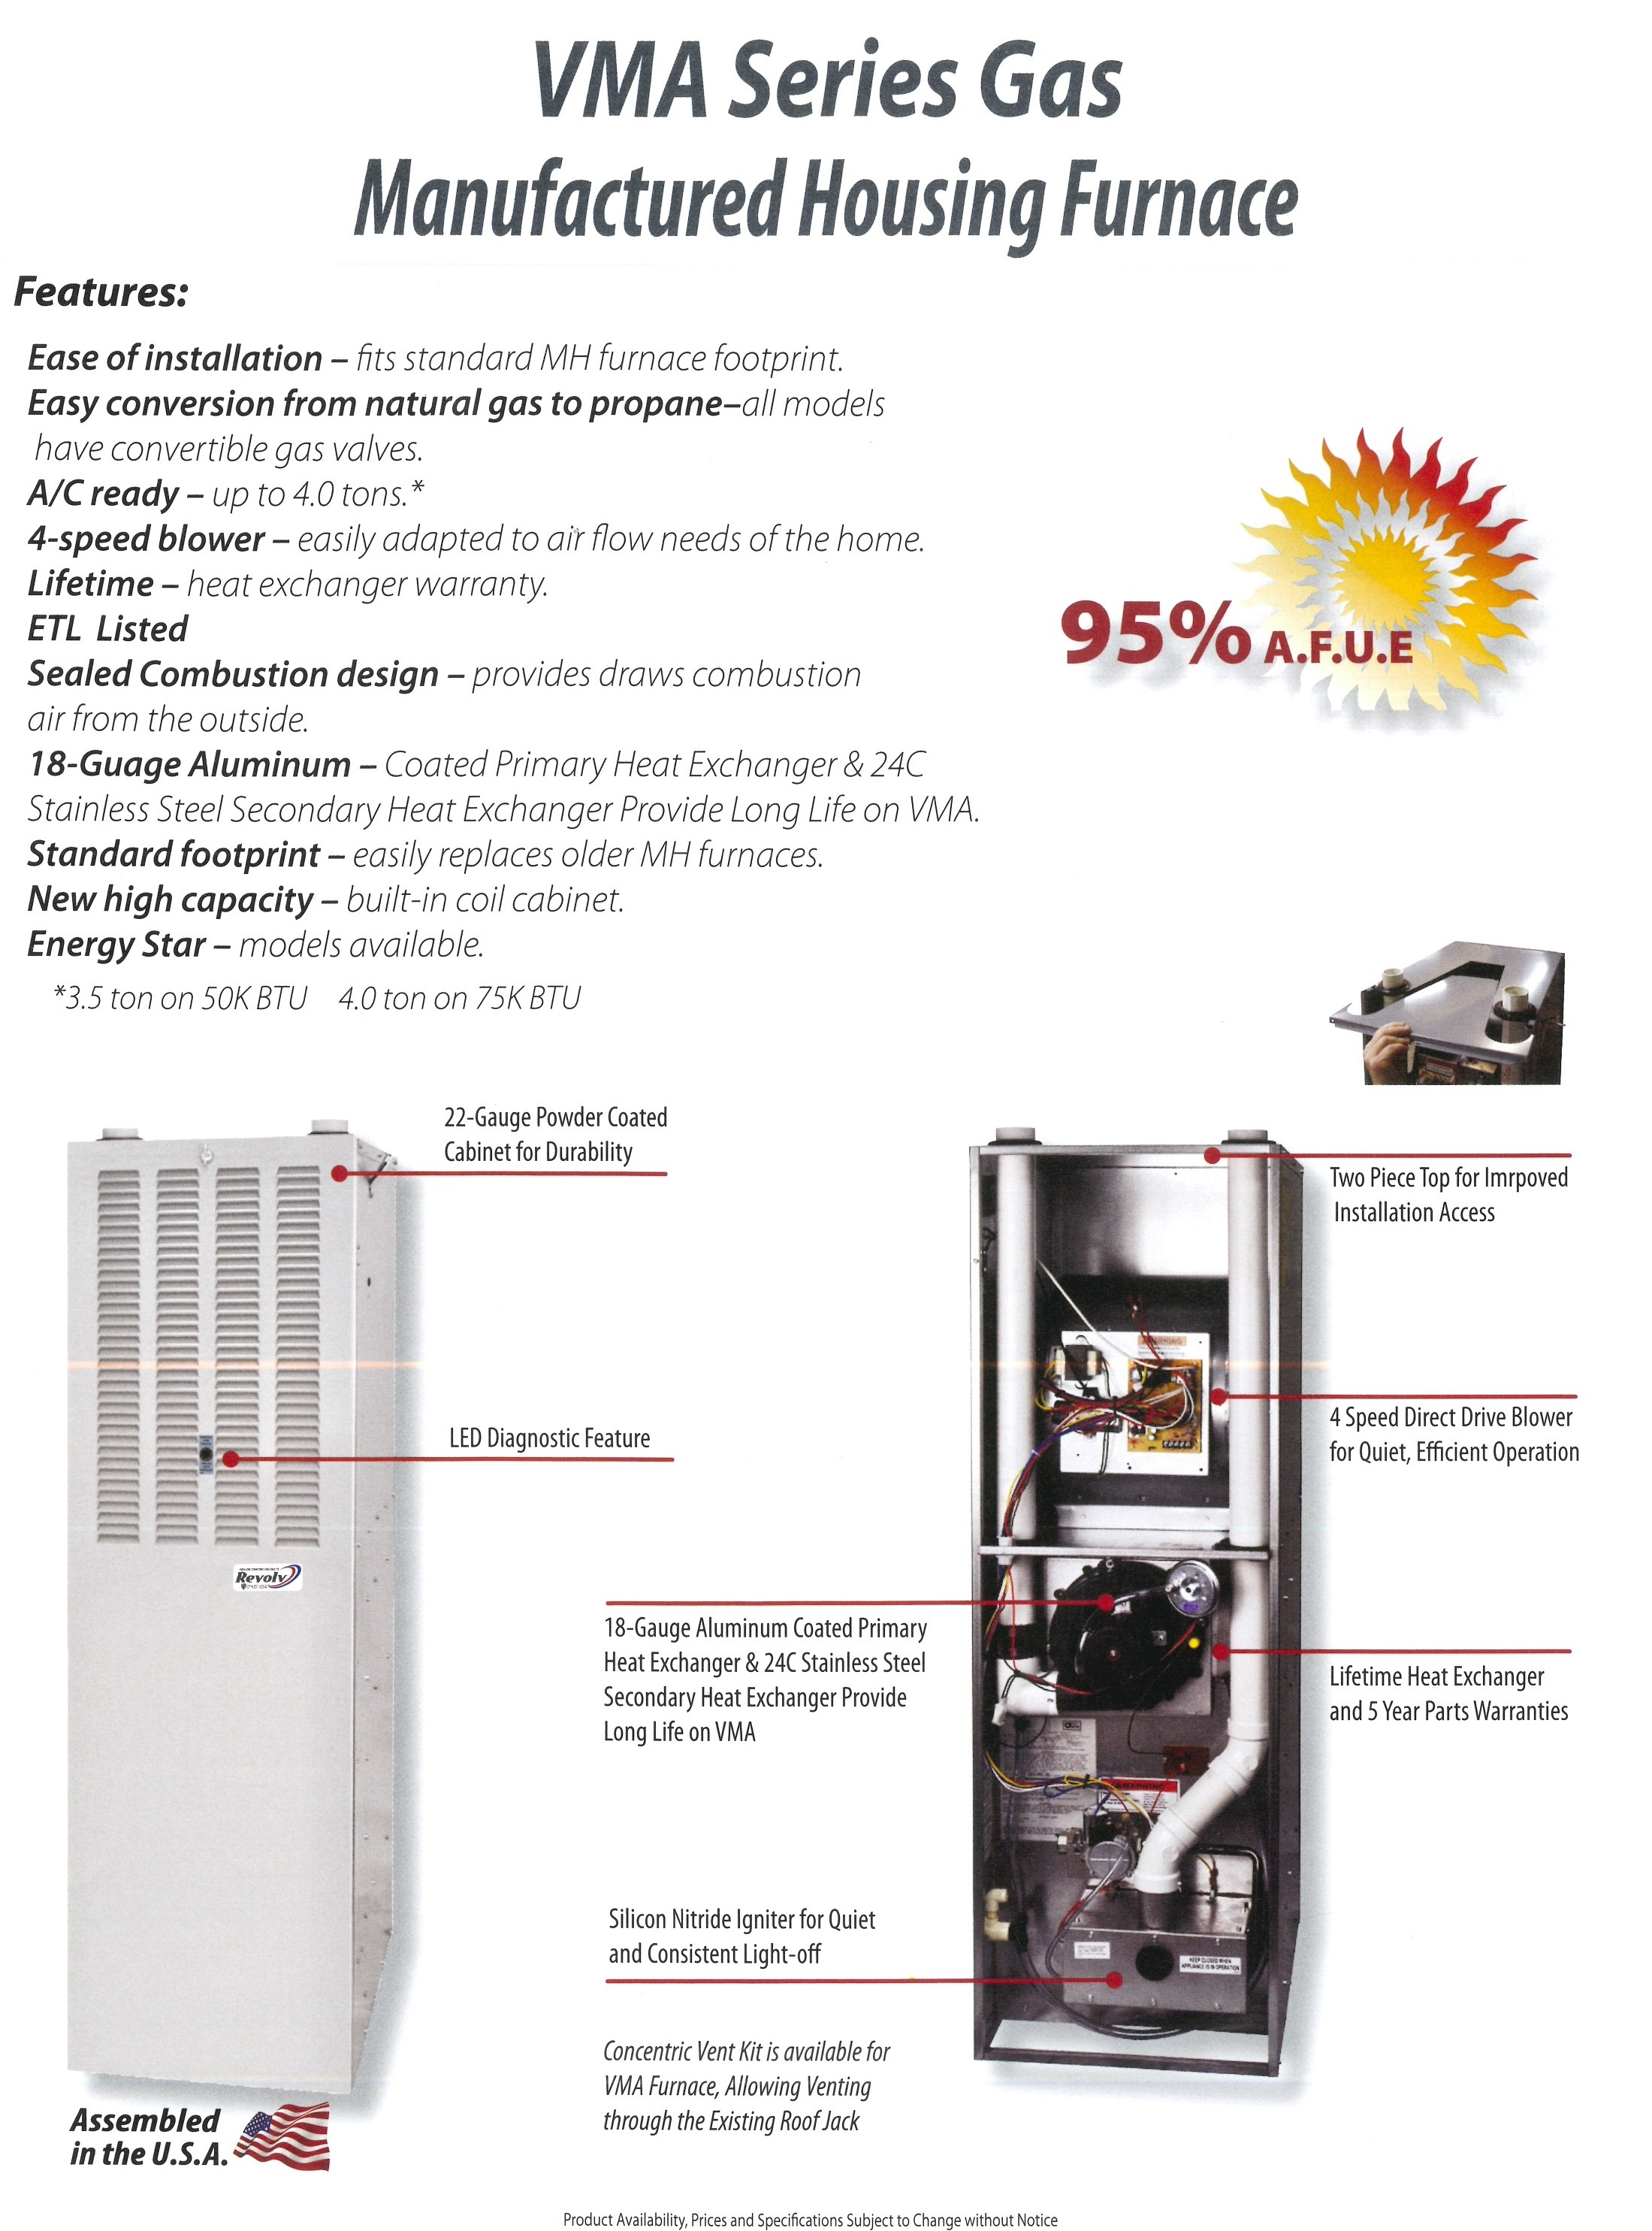 VMA SERIES GAS MANUFACTURED HOUSING FURNACE